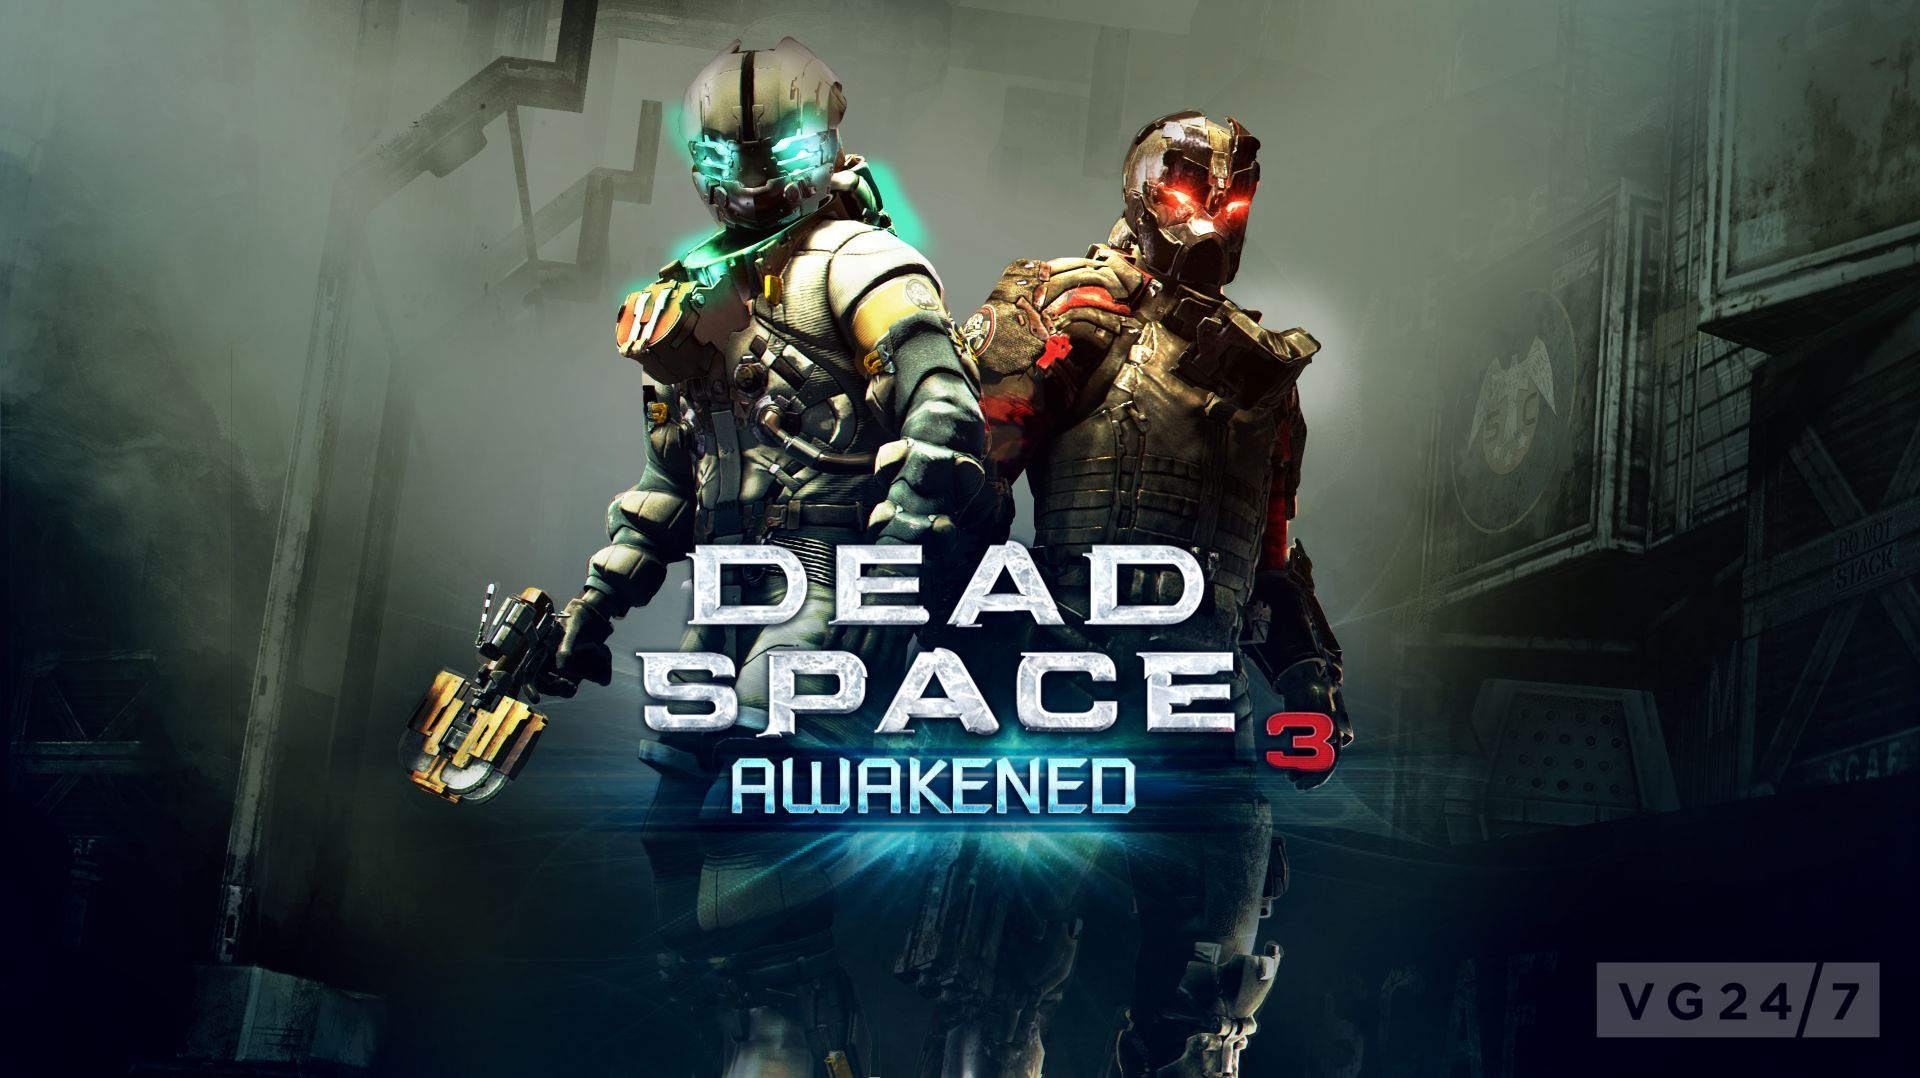 dead space 3 awakened dlc lands march 12th new screens. Black Bedroom Furniture Sets. Home Design Ideas